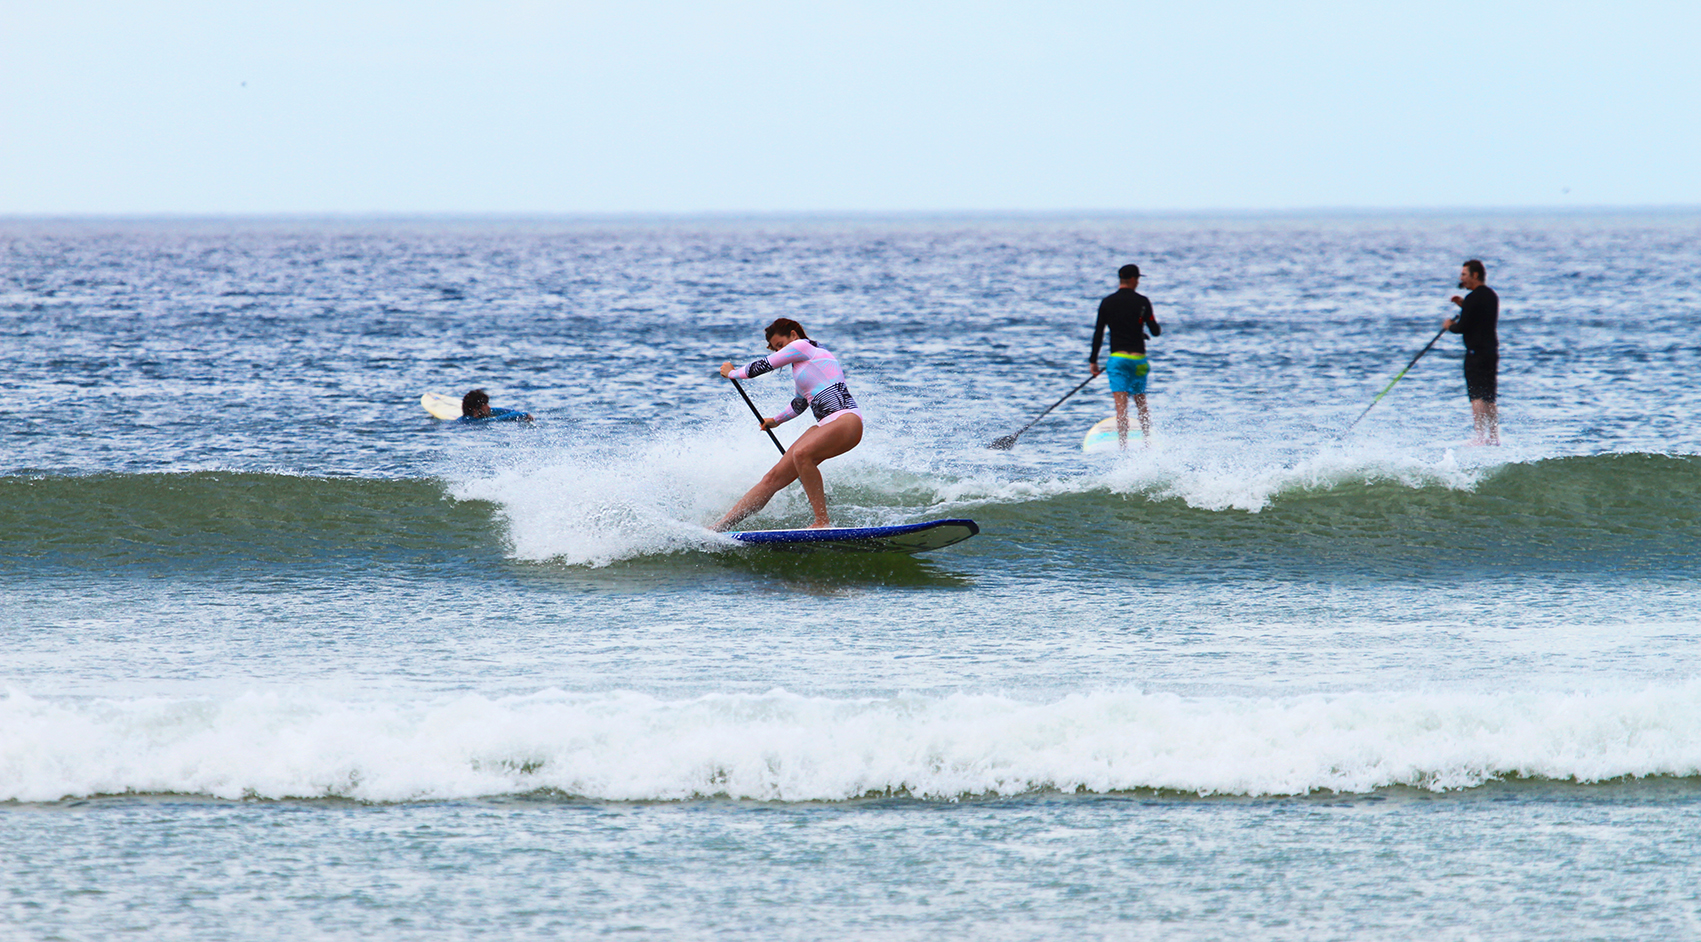 Tarryn with a massive frontside snap, on a tiny wave. Gotta love that speed!